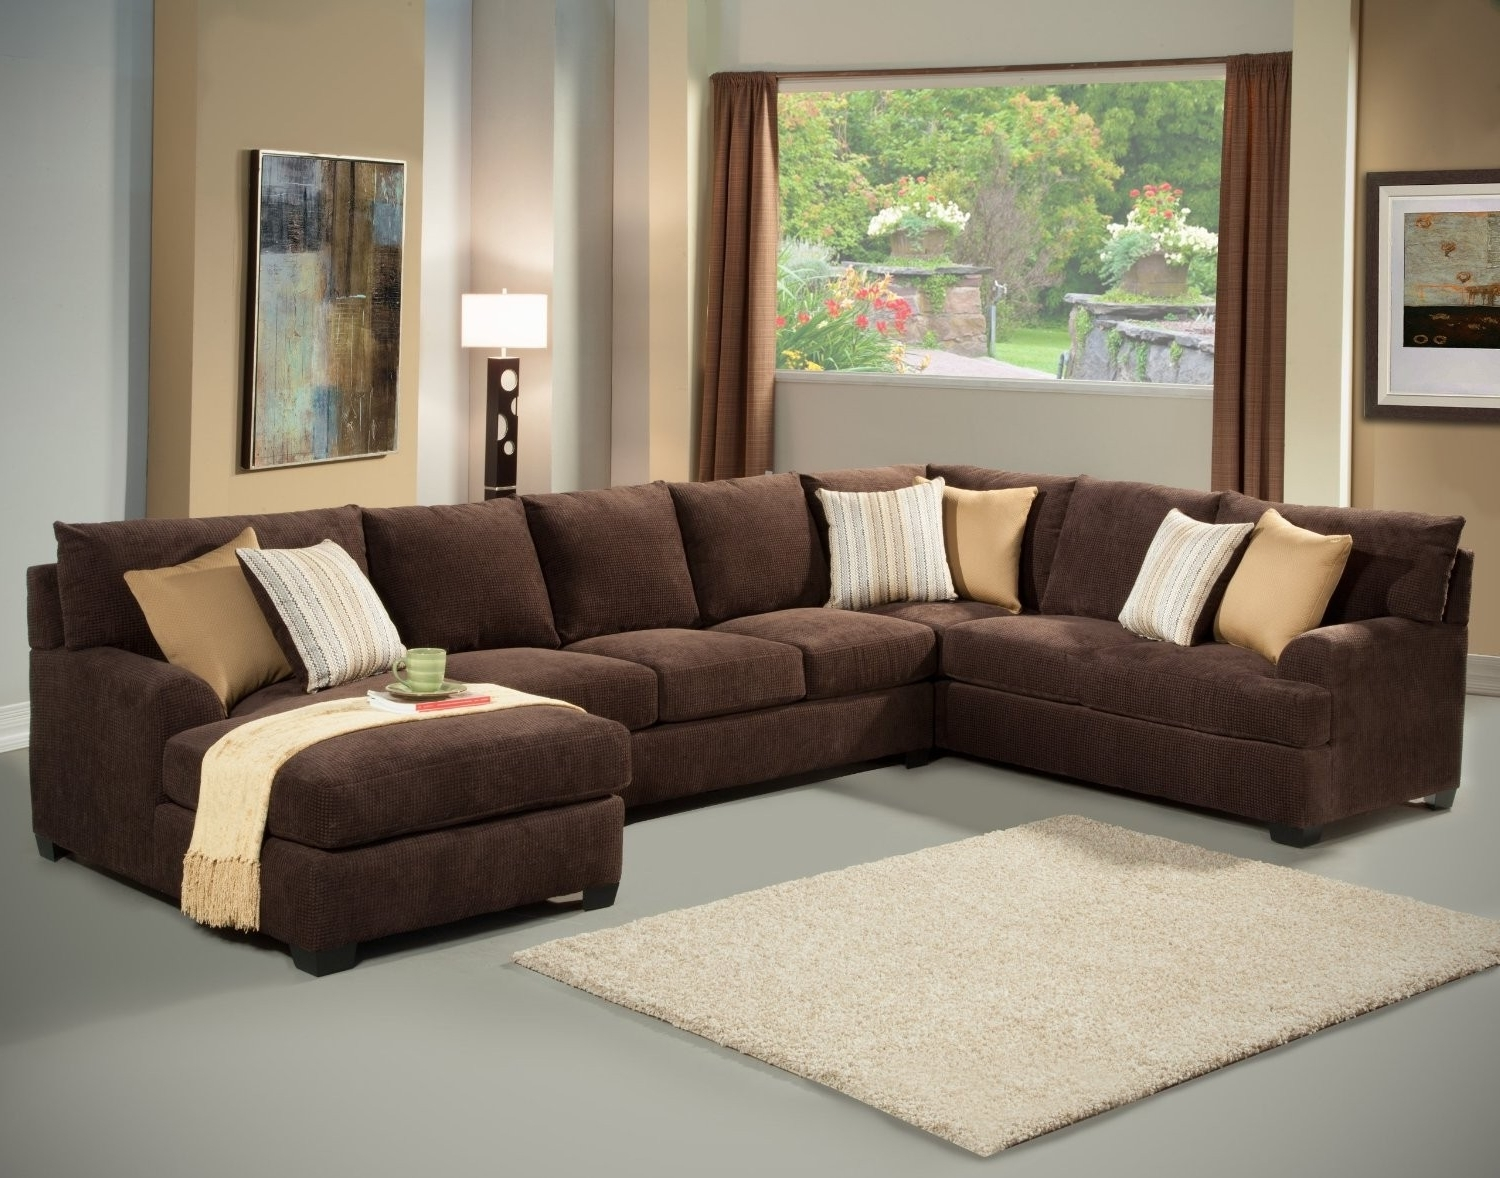 Lovely Sectional Sofa Phoenix – Buildsimplehome Inside Most Popular Phoenix Sectional Sofas (View 11 of 20)